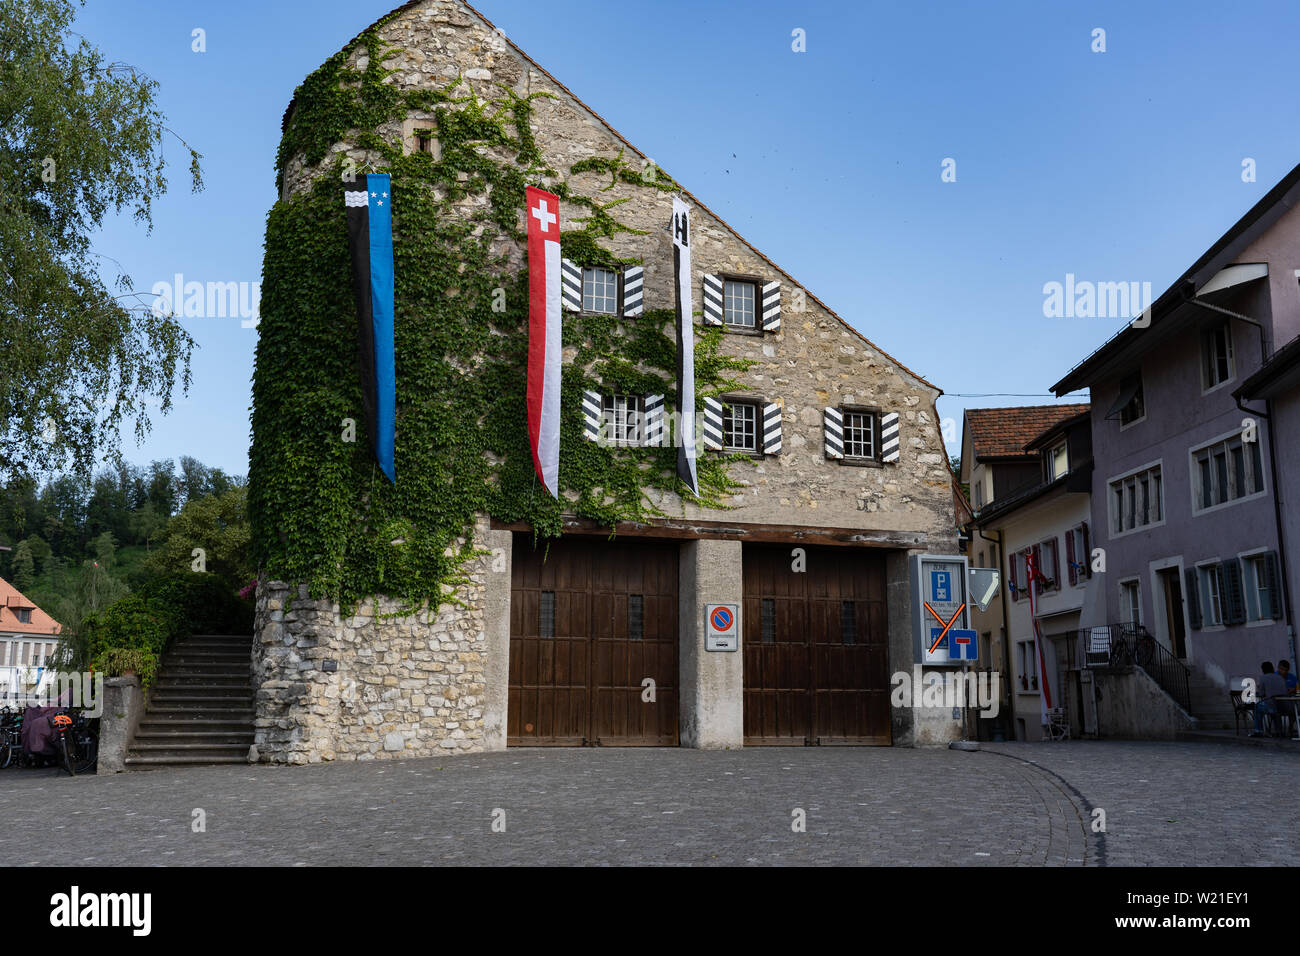 Brugg Stock Photos & Brugg Stock Images - Alamy